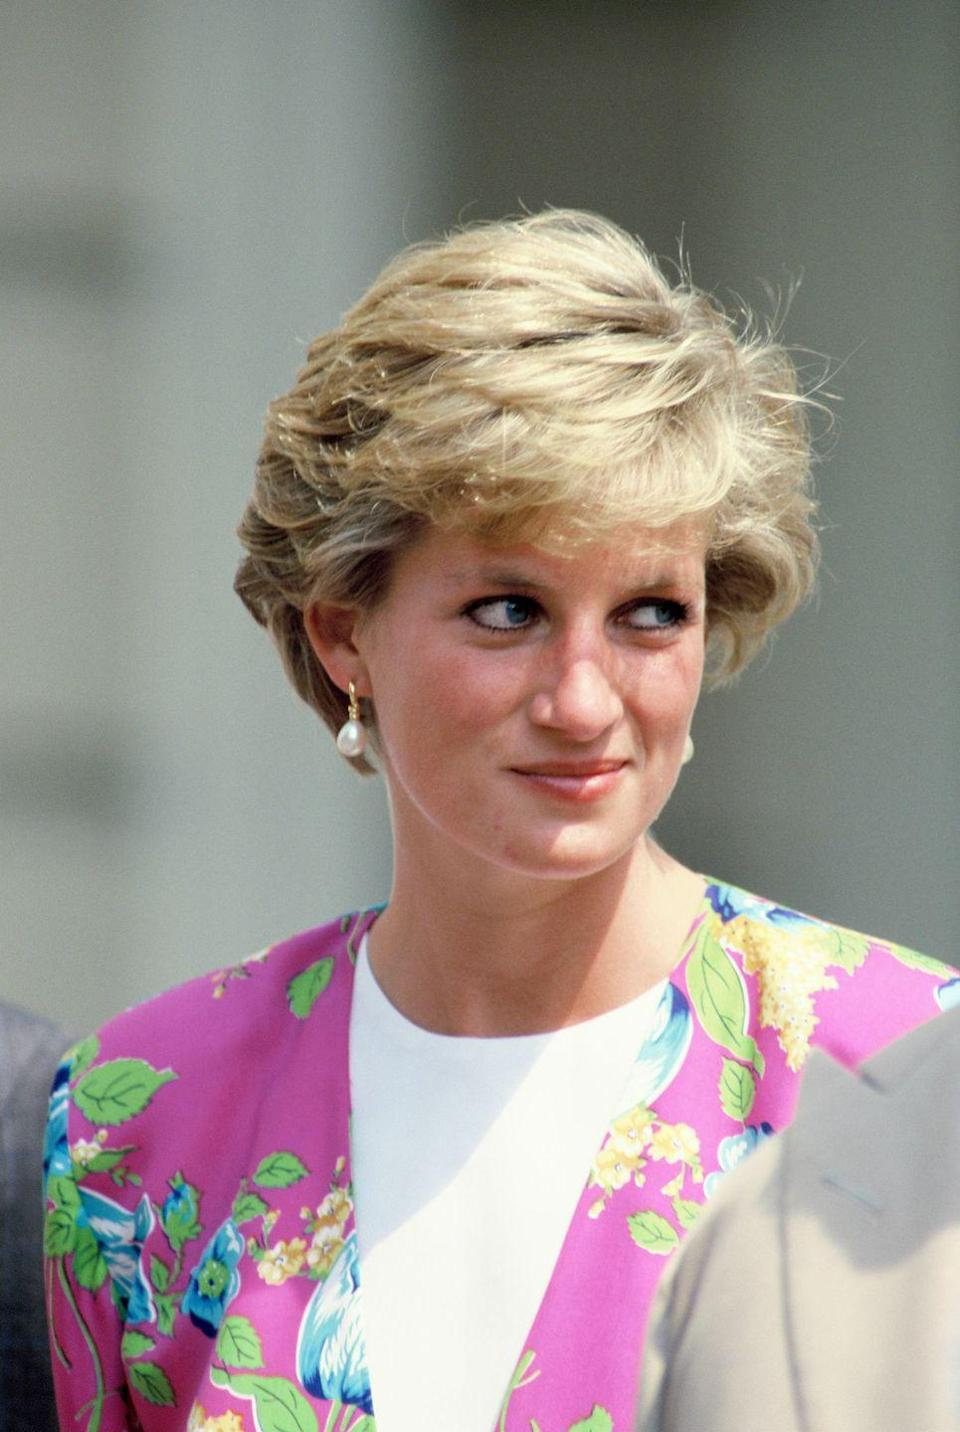 "<p>Ever the trendsetter, Princess Diana influenced women of the world to go short with her famous crop created by <a href=""http://www.harpersbazaar.com/beauty/hair/news/a13447/princess-diana-haircut-sam-mcknight/"" rel=""nofollow noopener"" target=""_blank"" data-ylk=""slk:hairstylist Sam McKnight"" class=""link rapid-noclick-resp"">hairstylist Sam McKnight</a>. </p>"